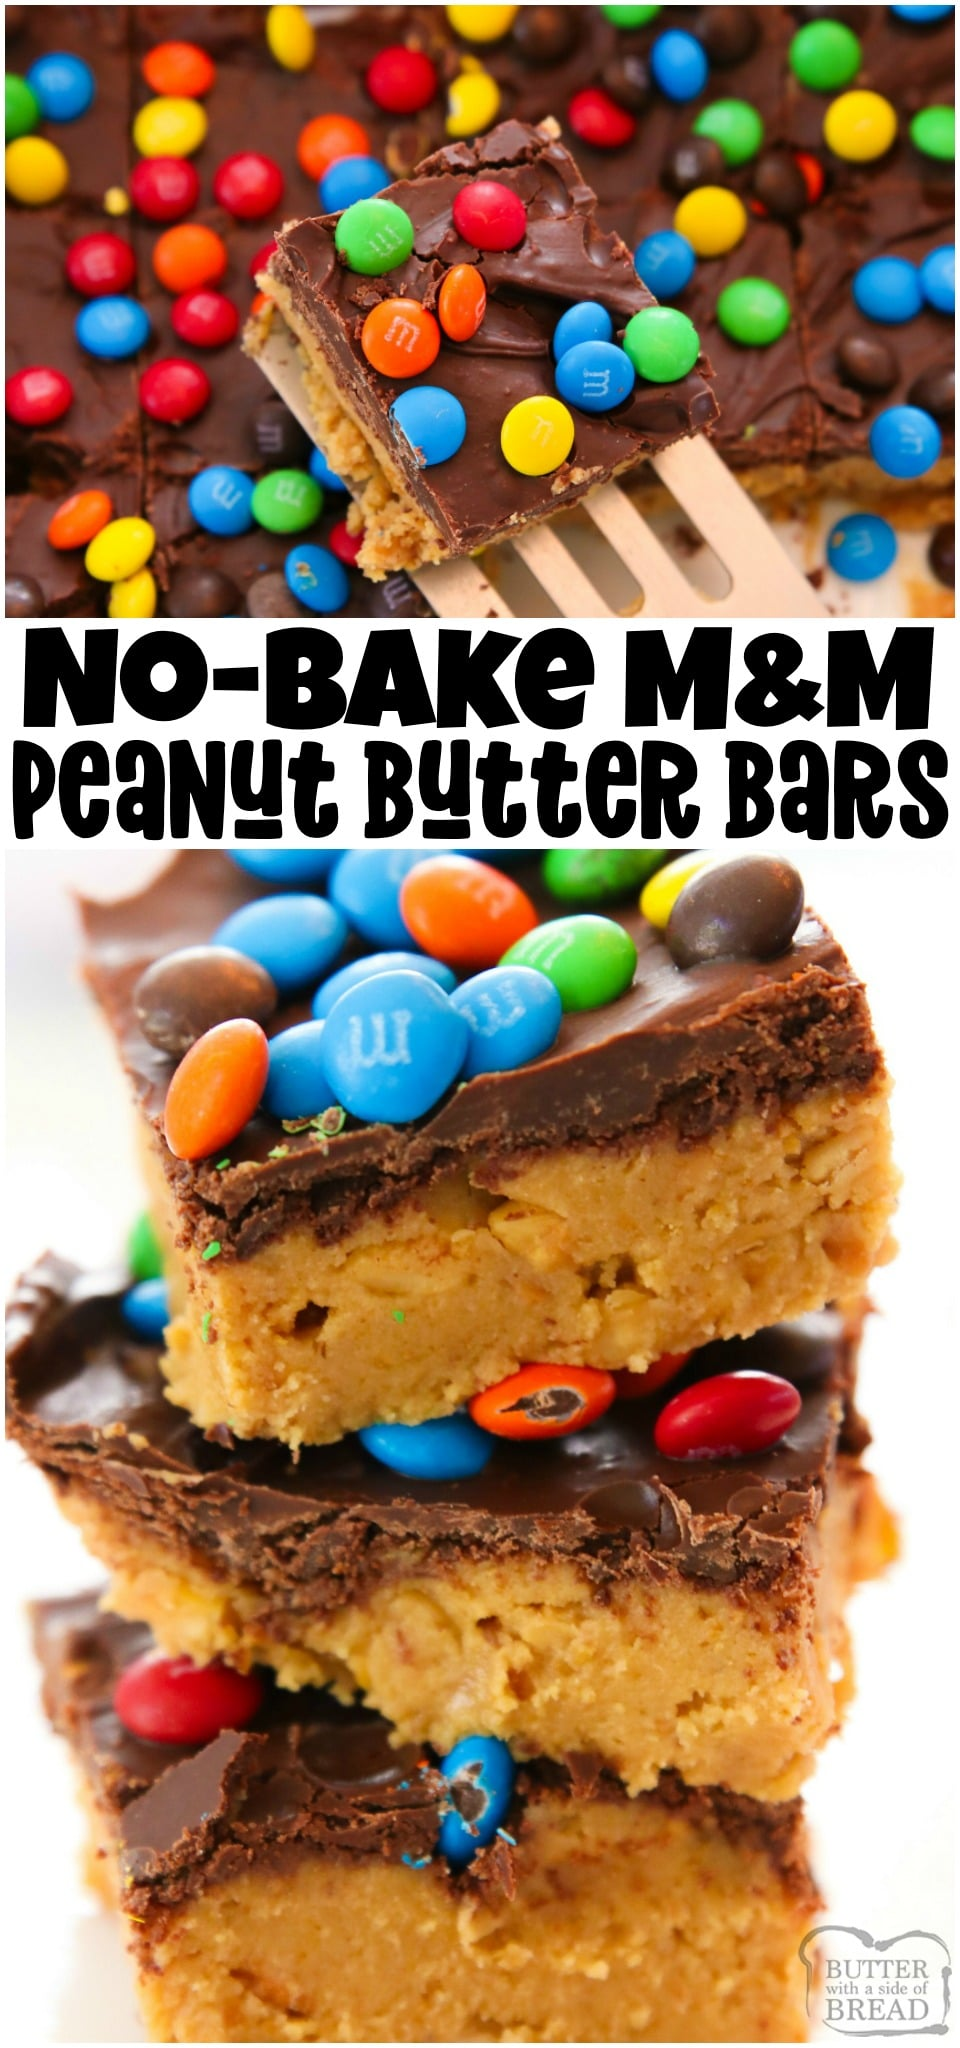 No Bake M&M Peanut Butter Bars are the perfect no-bake dessert to make this summer! Graham cracker crumbs, peanut butter and both chocolate chips and M&M's combine in this sweet and salty treat.